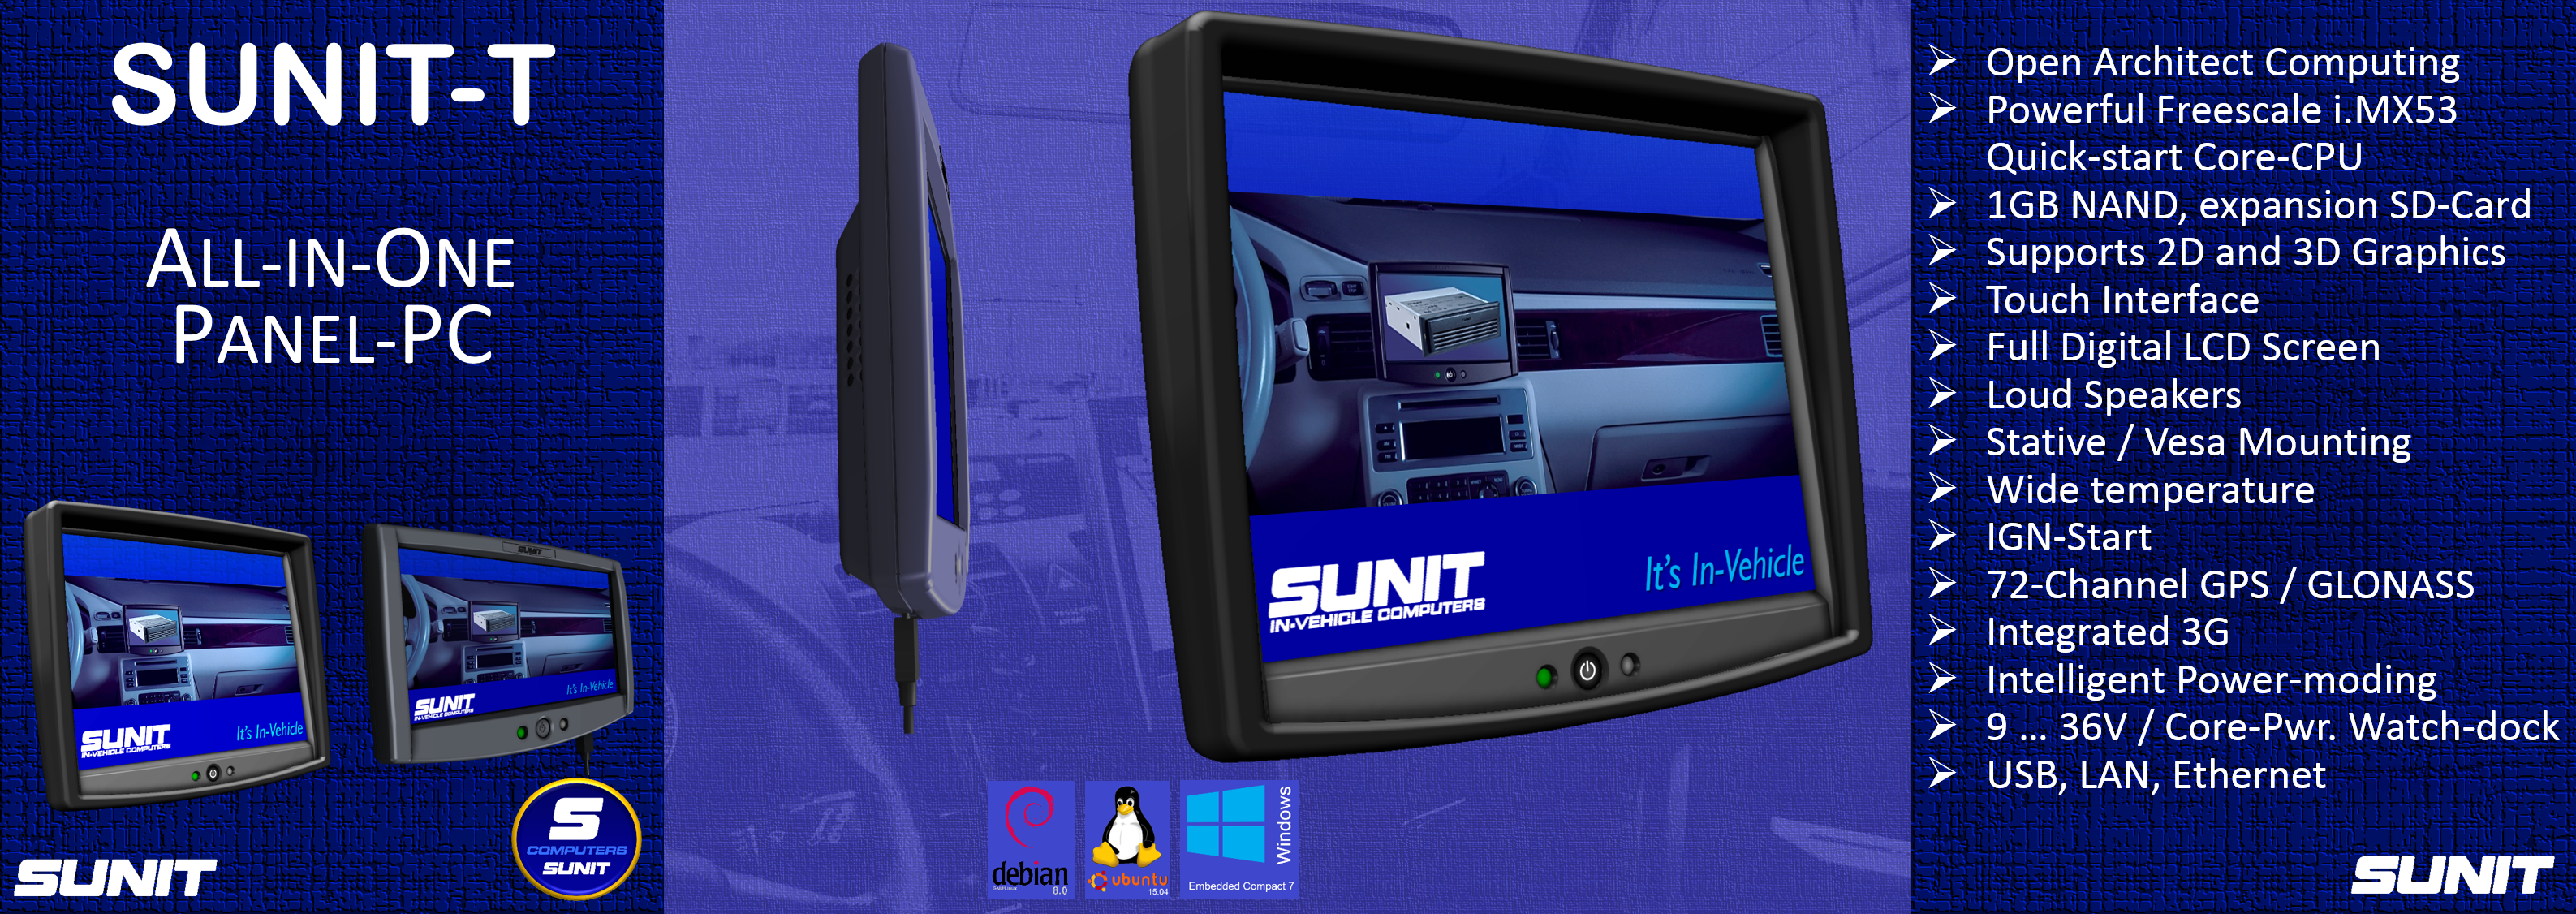 SUNIT-Tall-in-One Panel-PC for Industry and Fleet Management